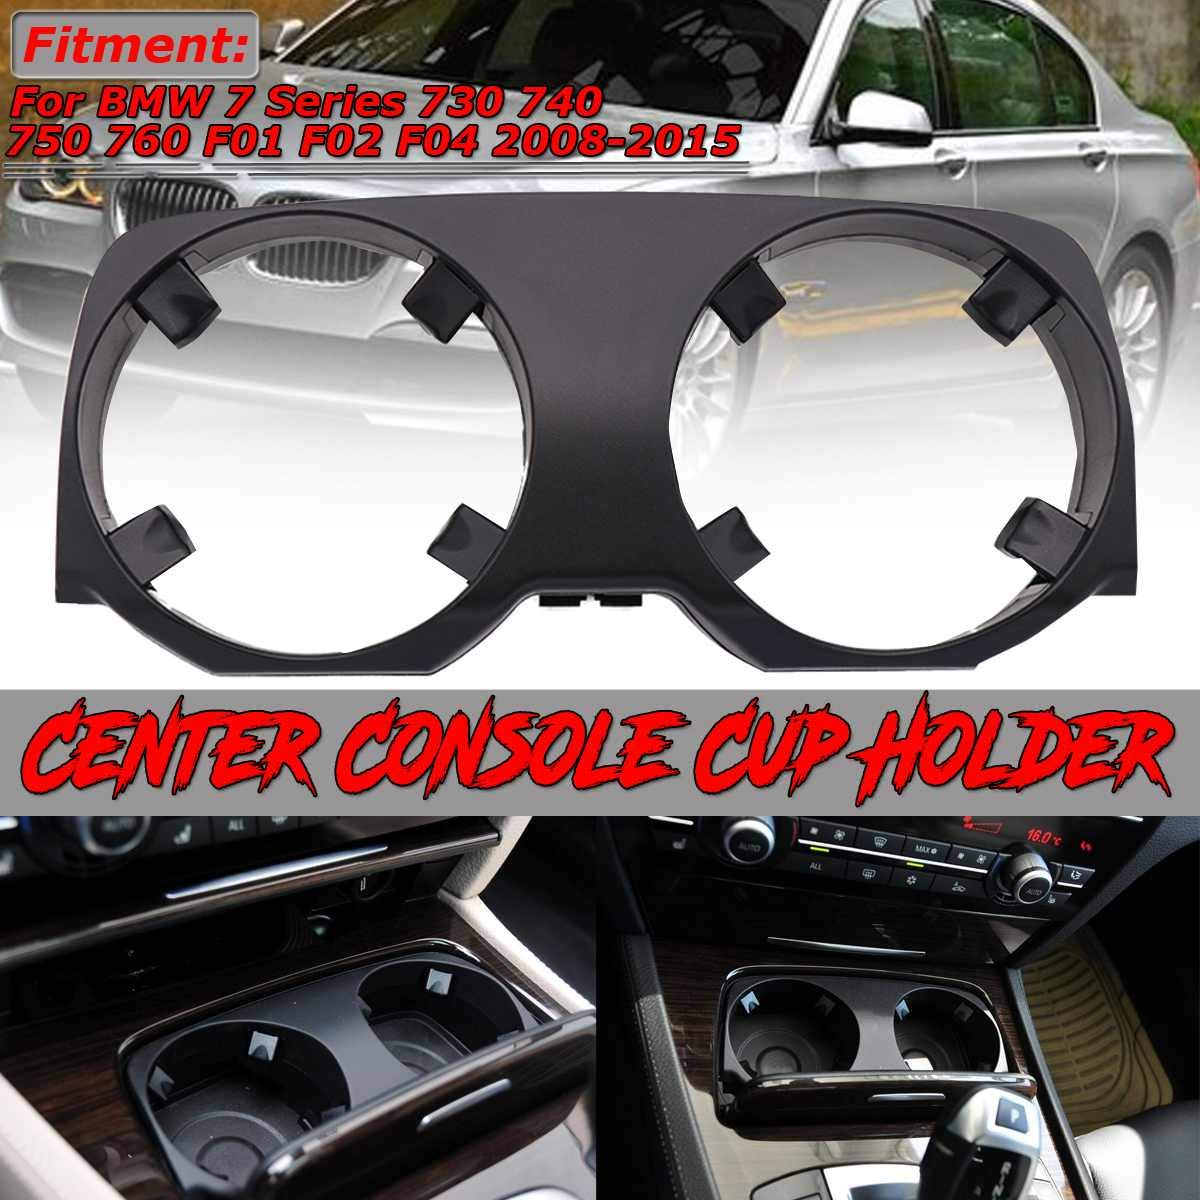 1x Car Center Console Cup Holder Car Water Cup Drink Holder Outer Cover For BMW 7 Series 730 740 750 760 F01 F02 F04 2008-2015